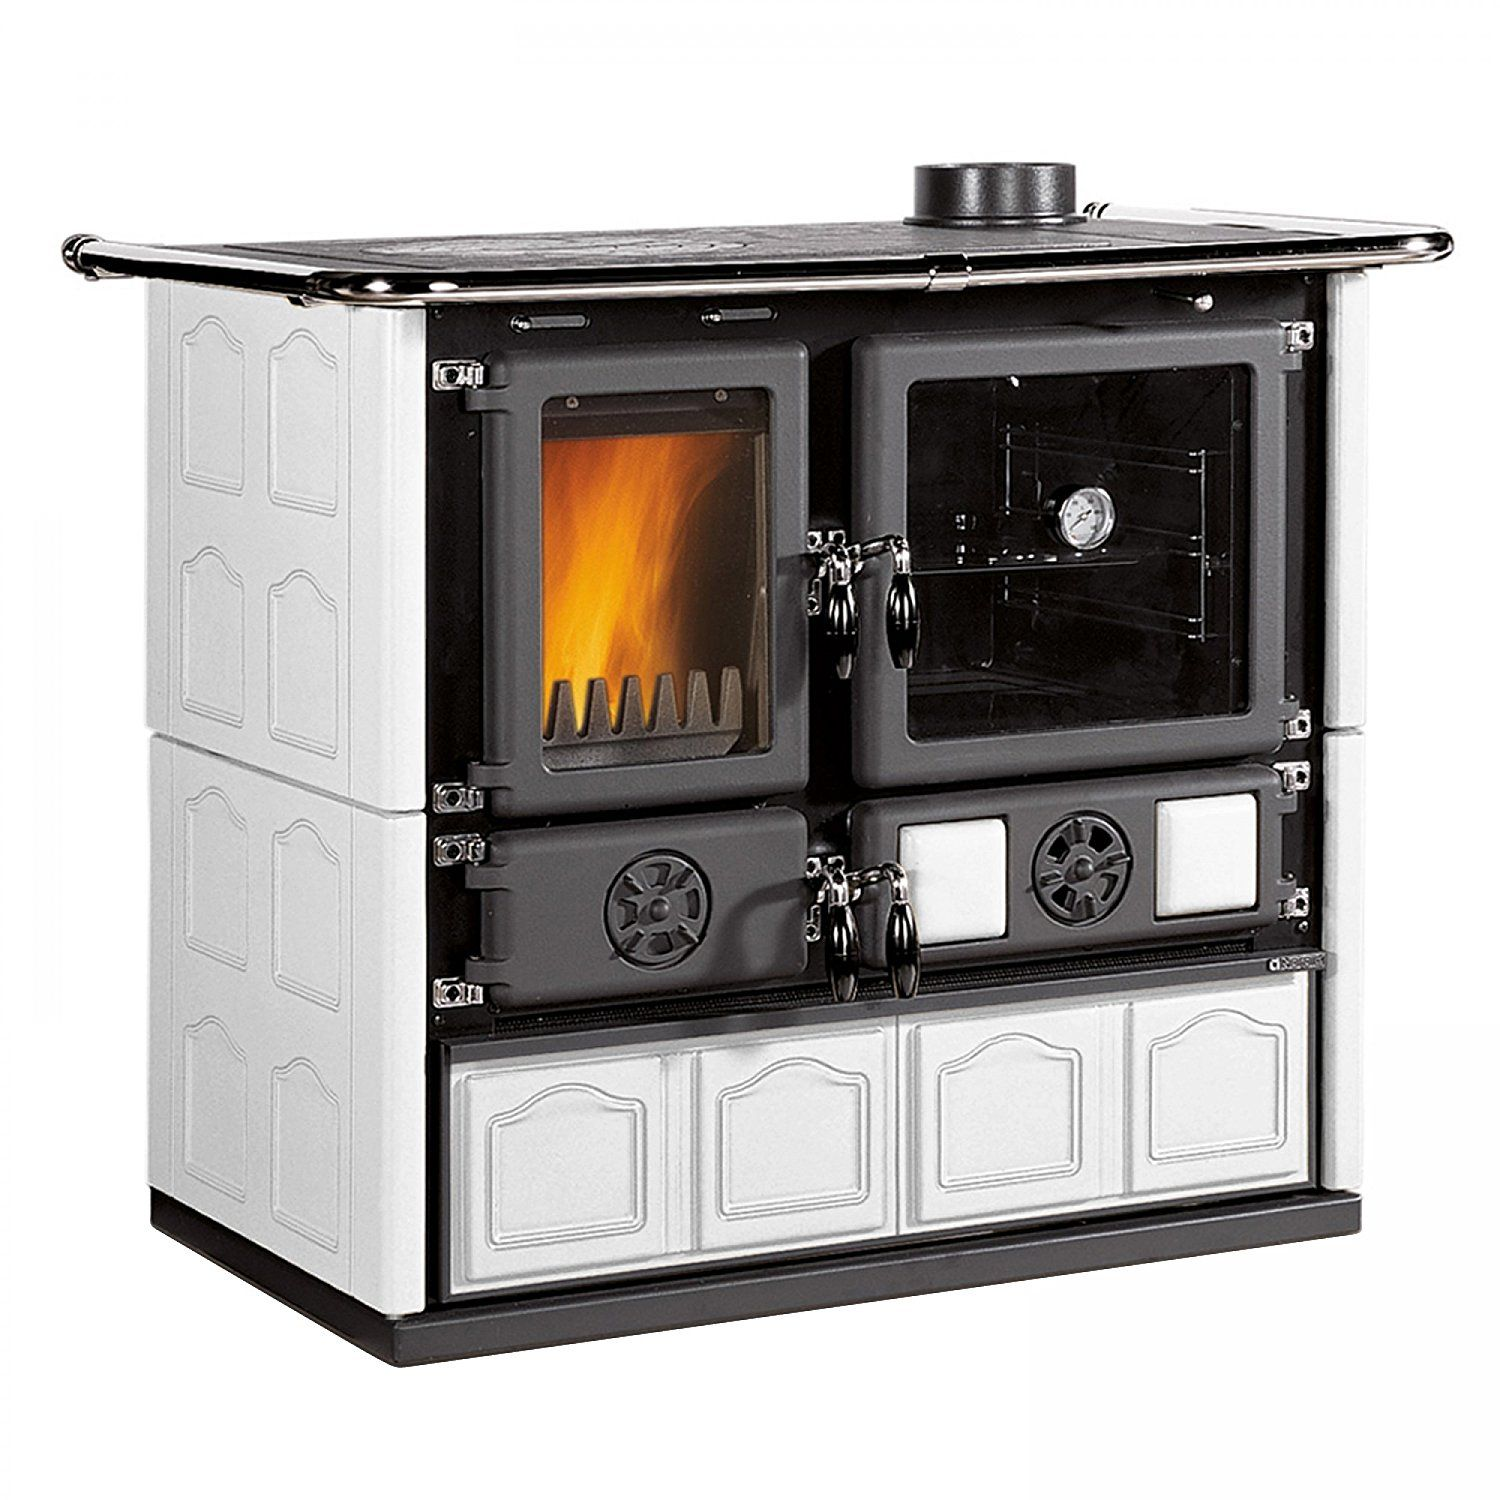 Kamineinsatz La Nordica La Nordica Wood Burning Cook Stove With Wood Burning Baking Oven